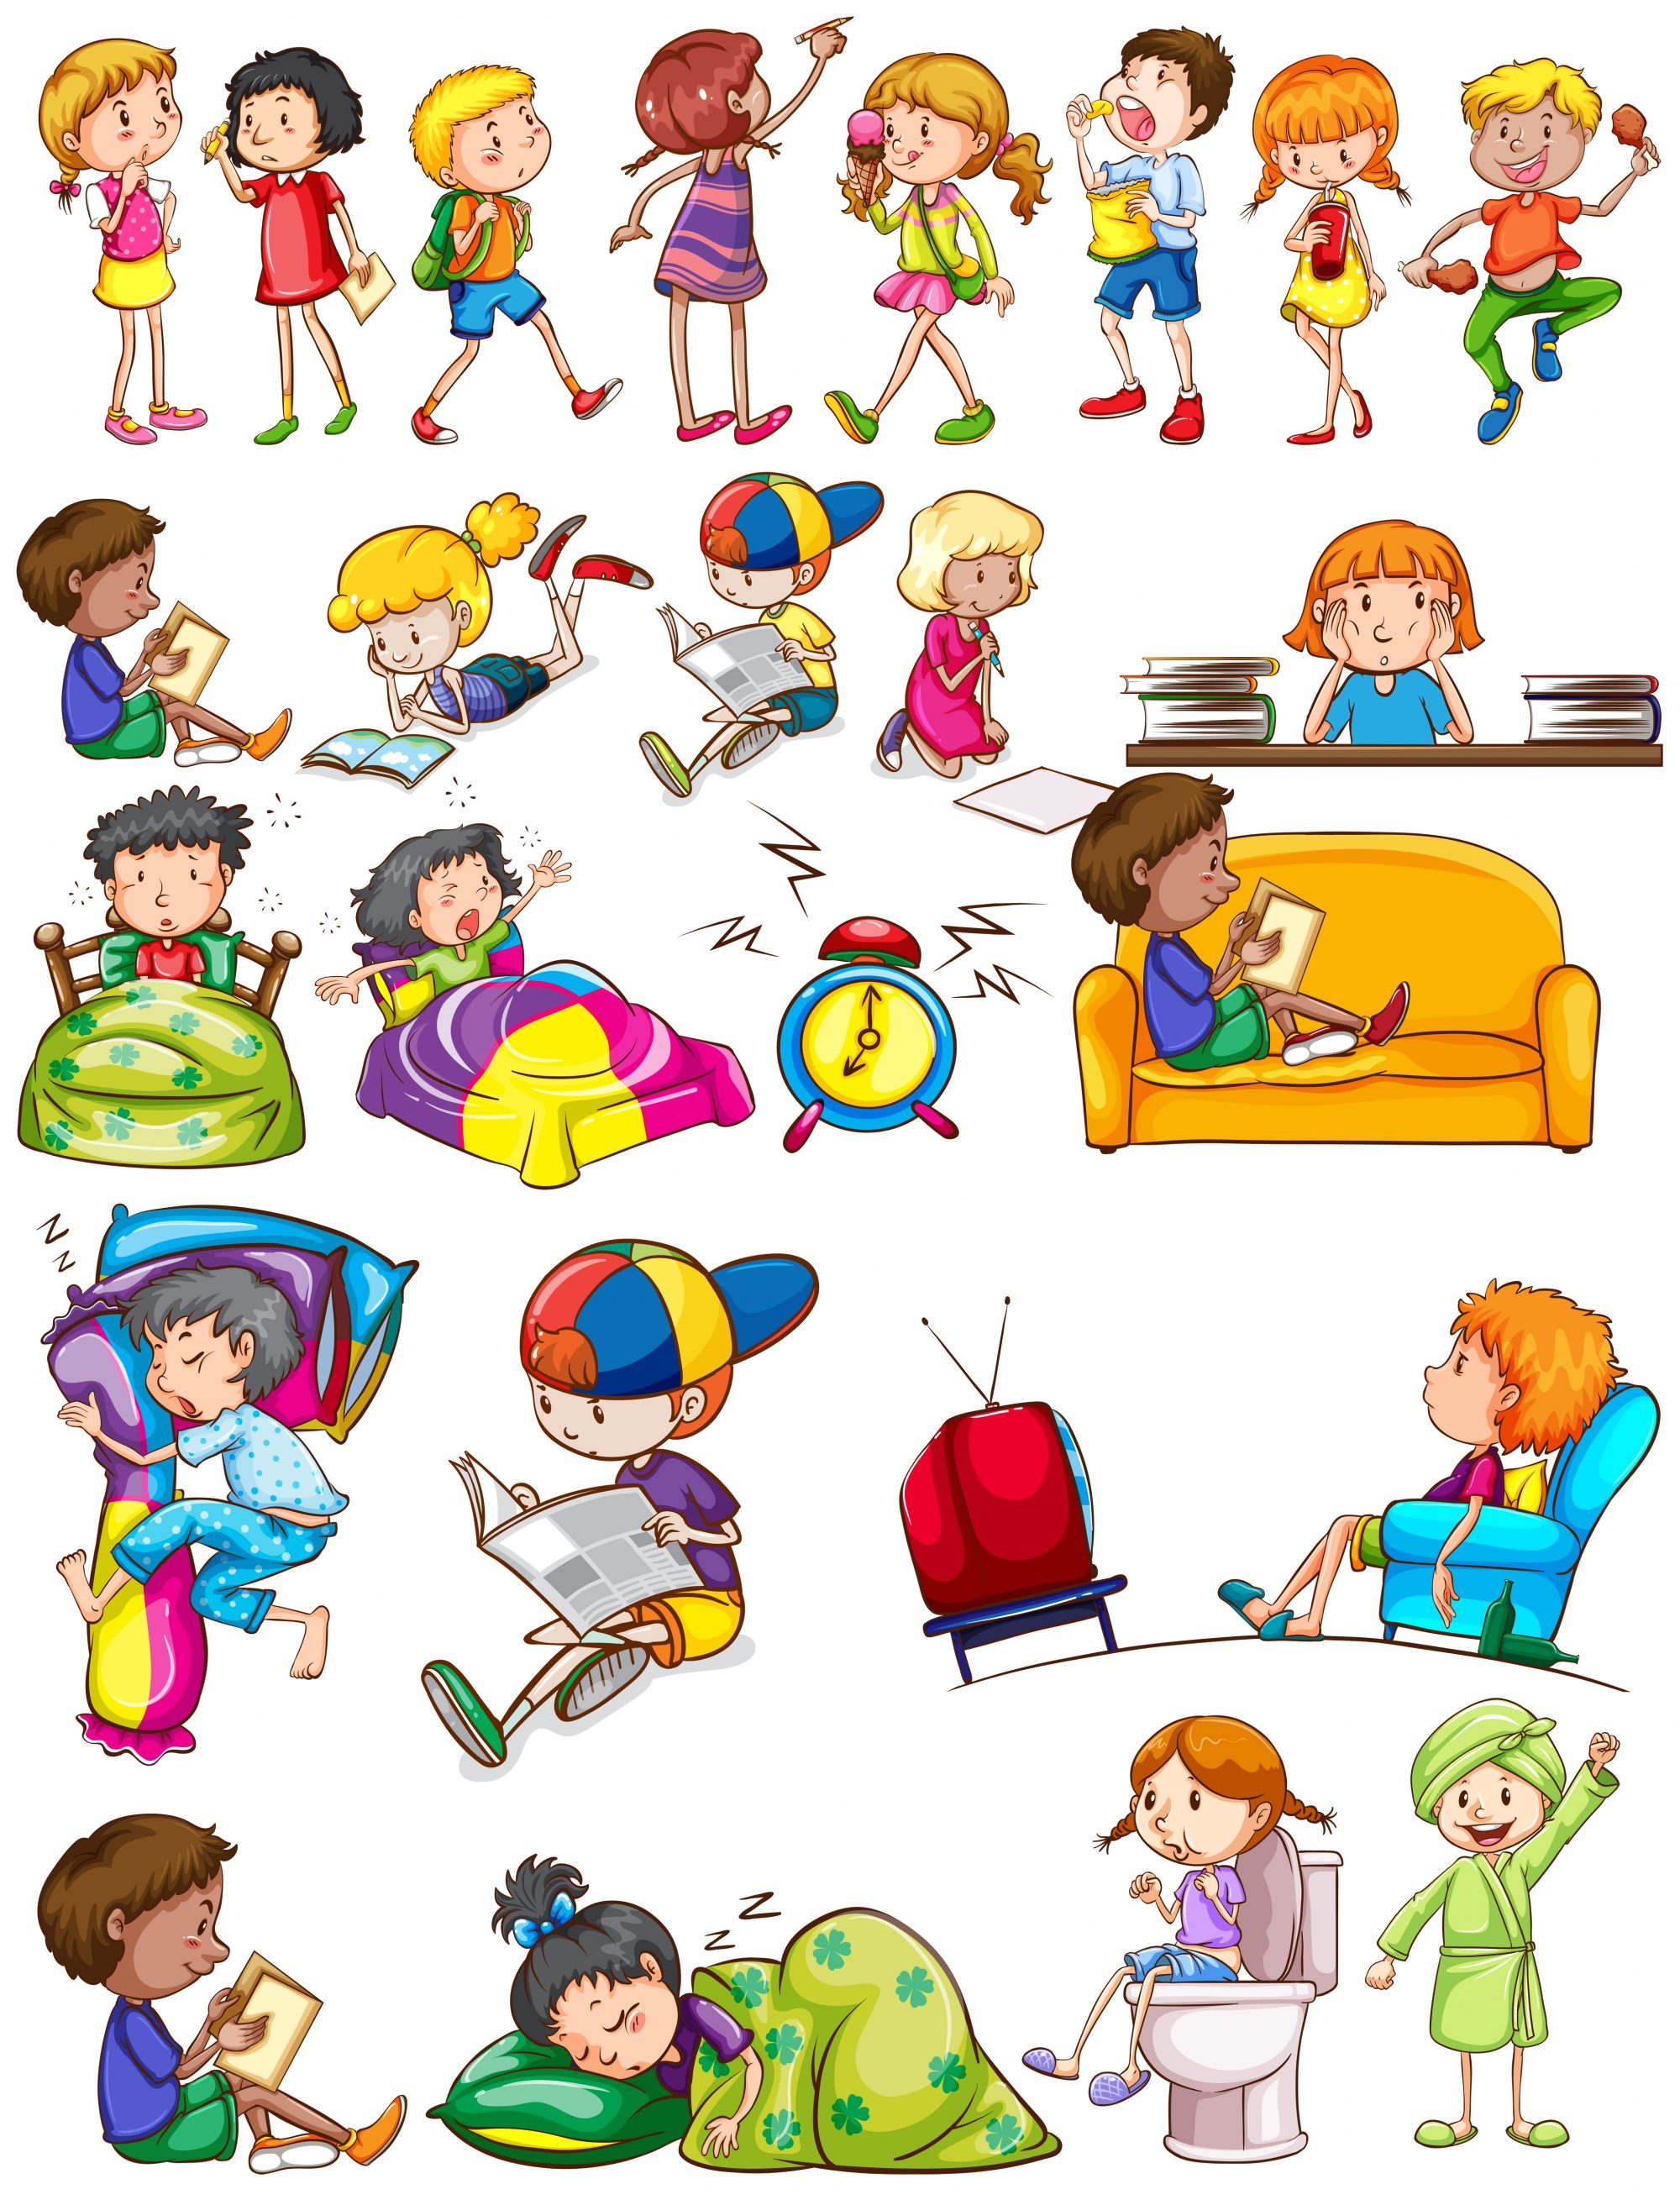 Boys and girls doing activities